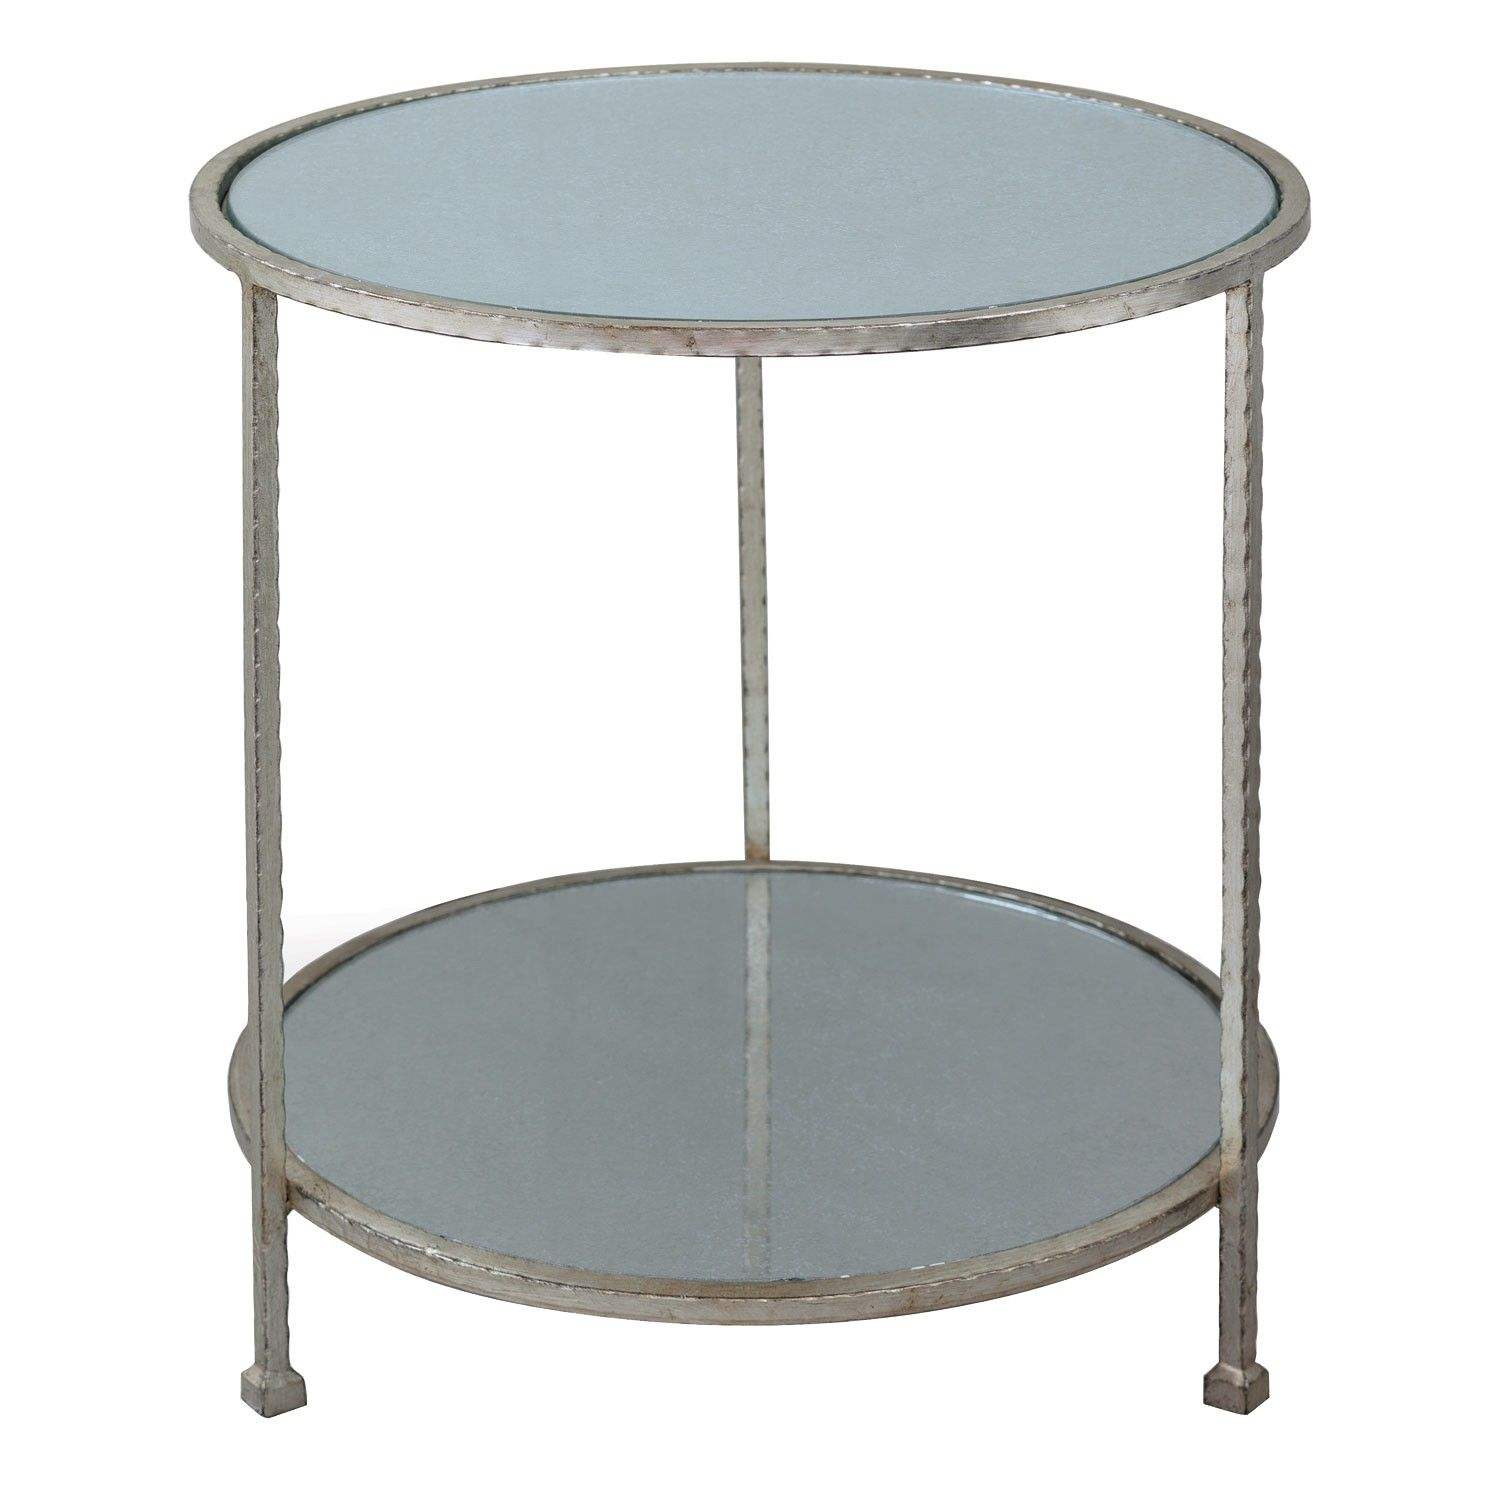 the outrageous beautiful metal frame end table jockboymusic port harper silver metals and candelabra our round use next black glass tables nightstand lamps friday mattress bar